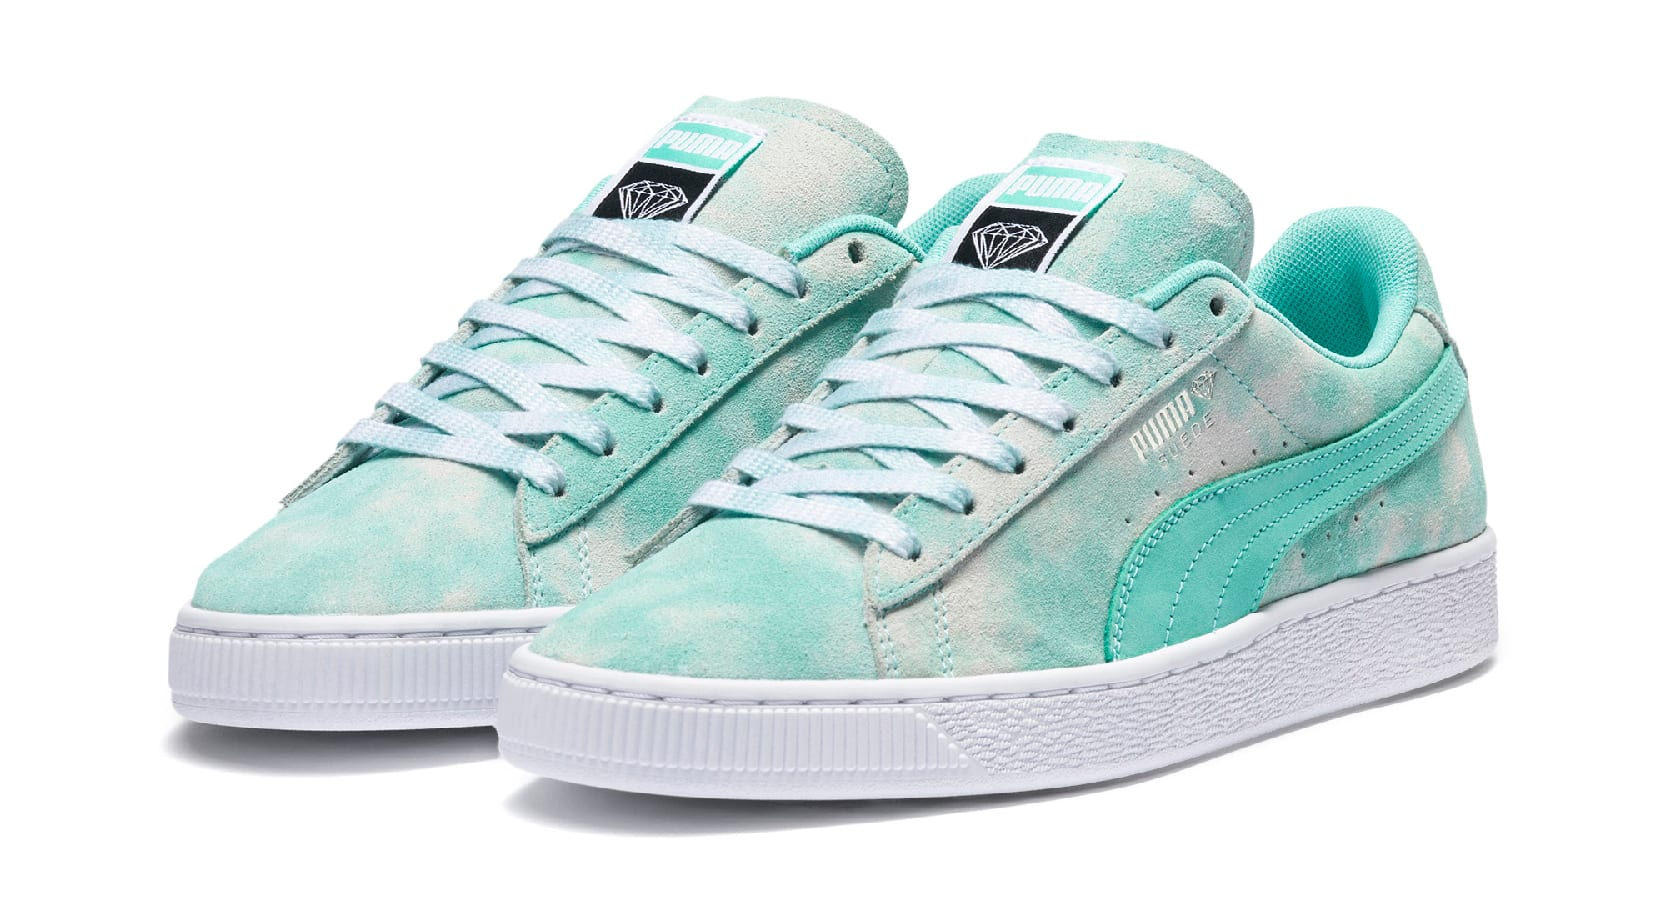 Diamond Supply Co. x Puma Suede 369396 (Pair)